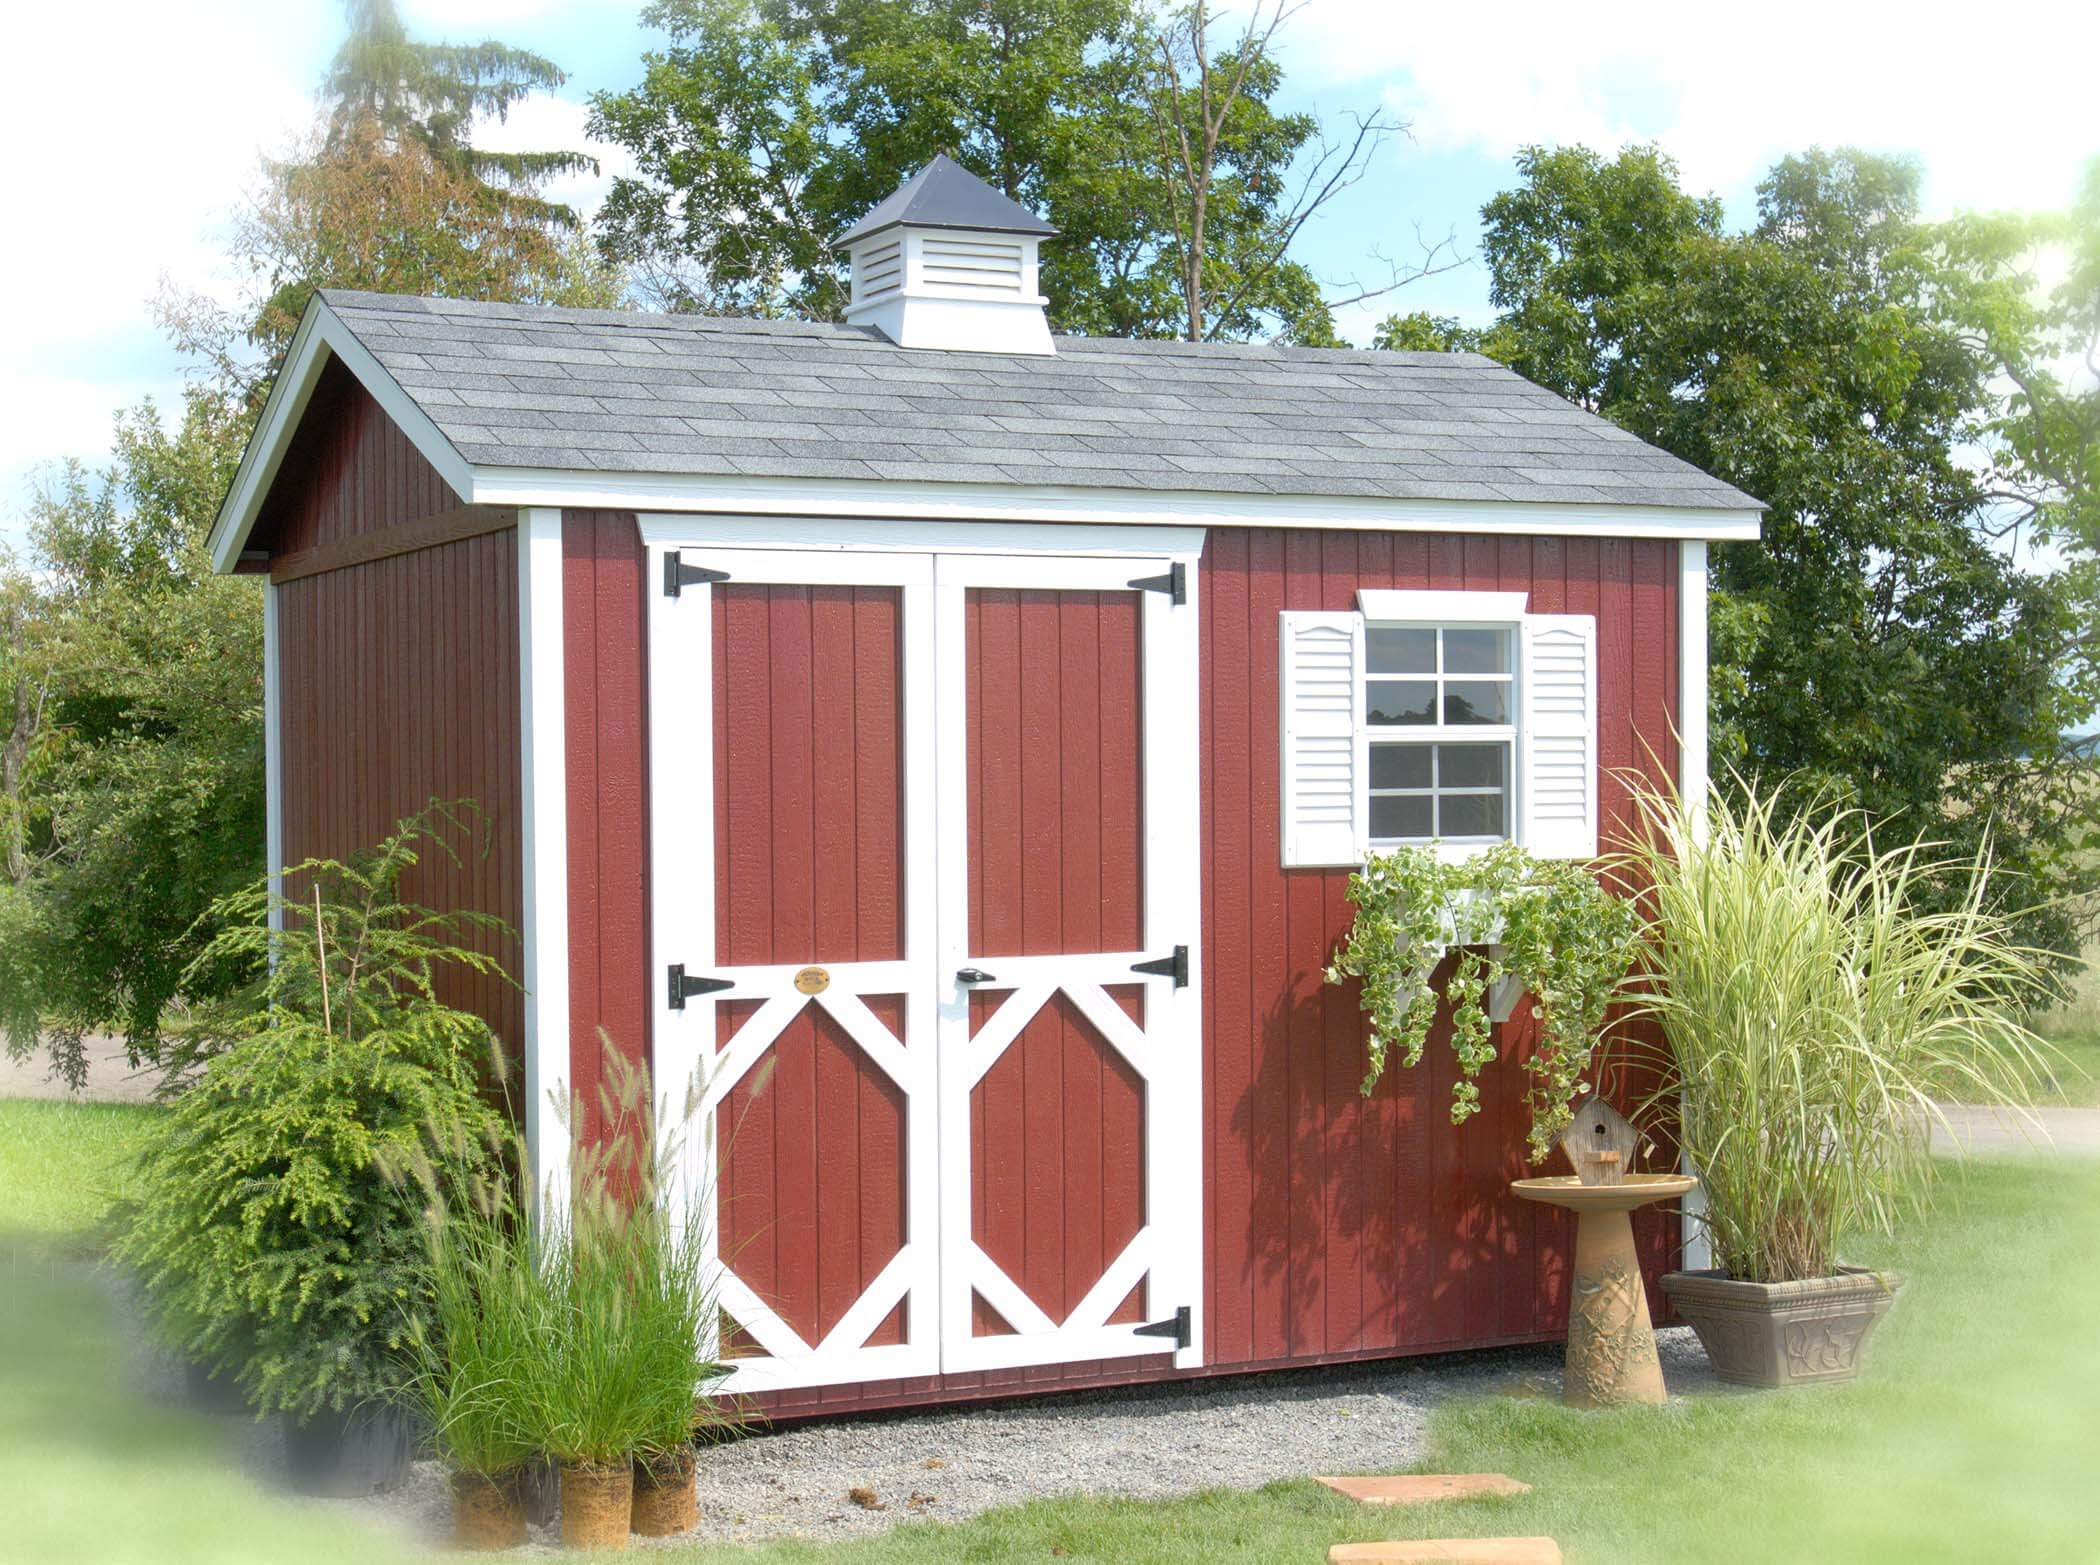 Classic Workshop storage shed kit